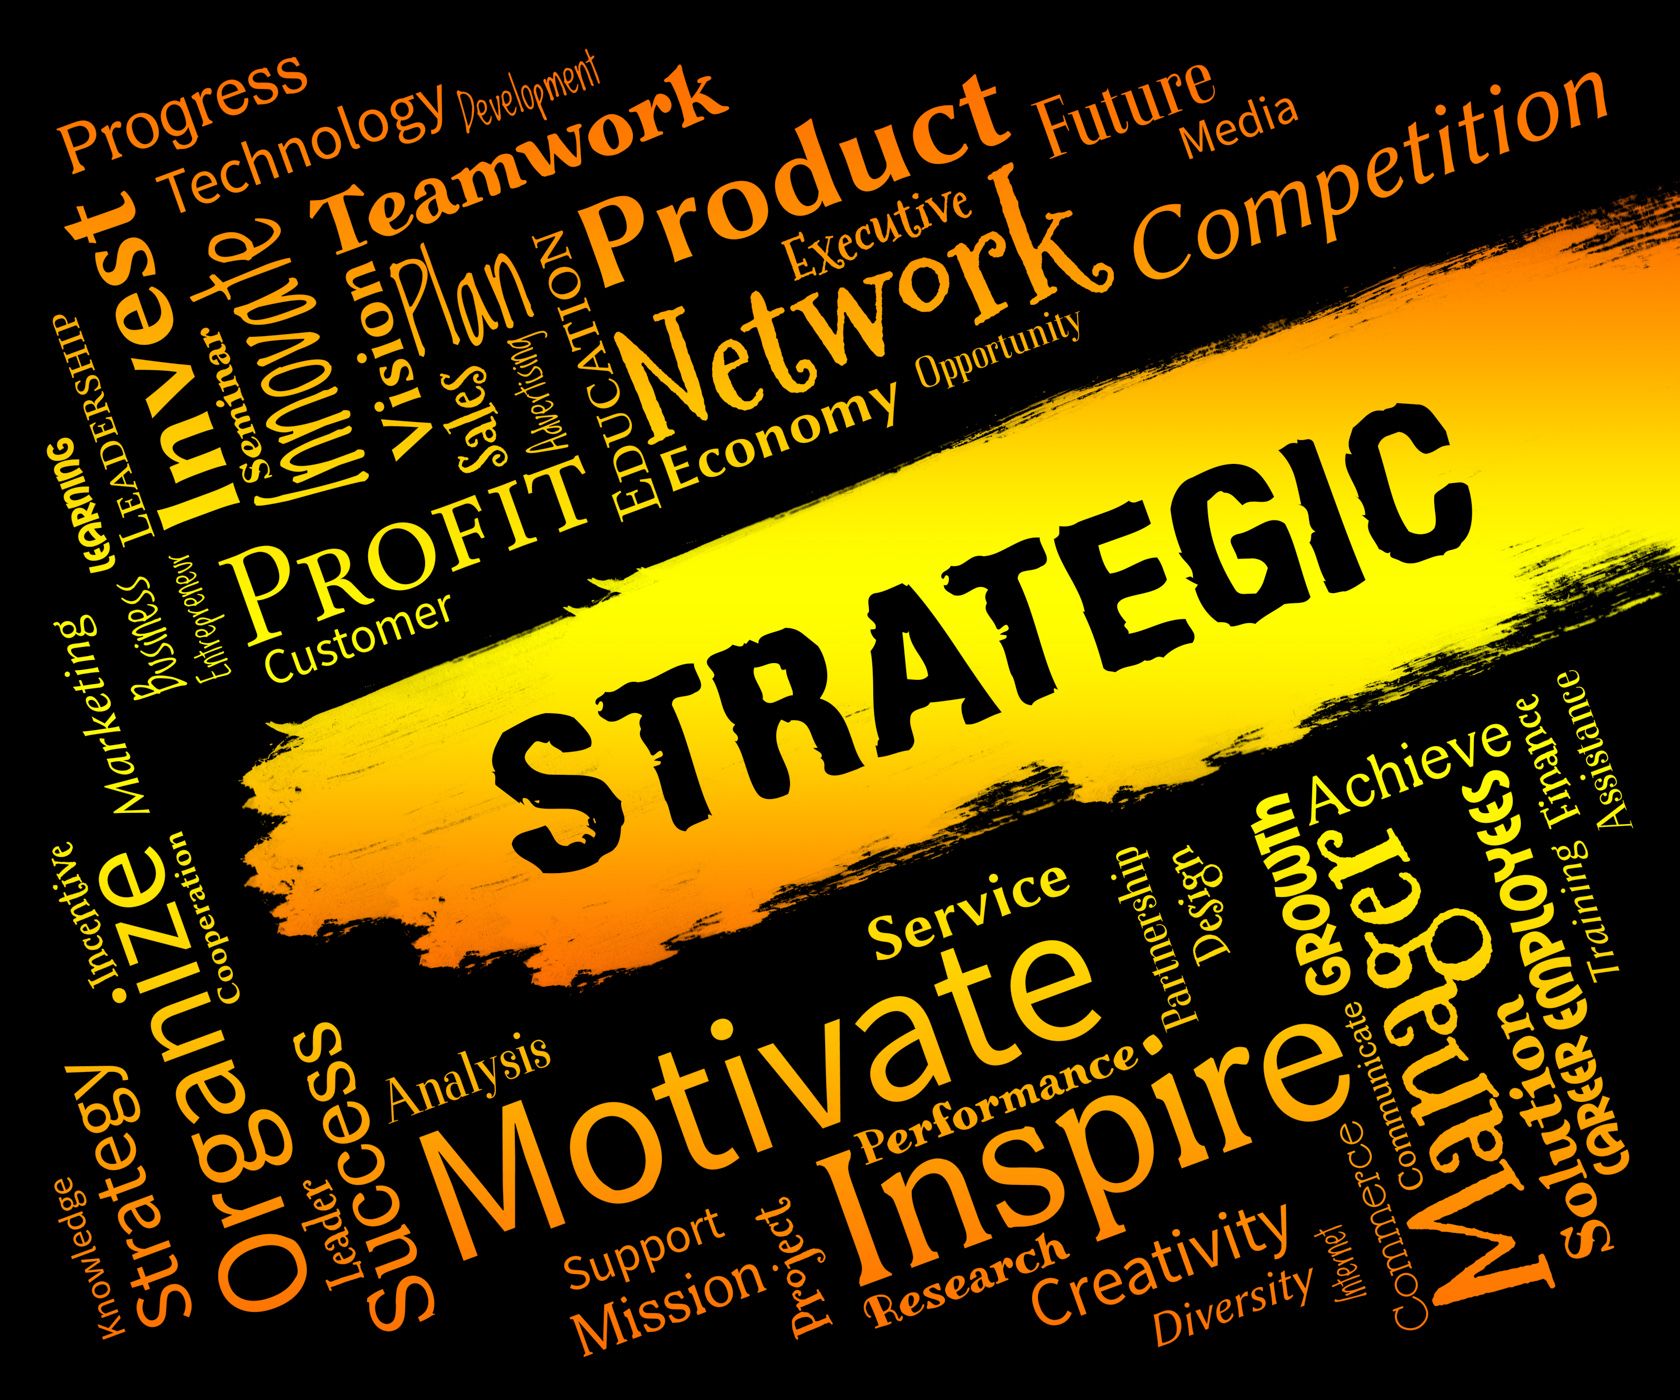 Strategic Words Indicates Business Strategy And Plans, Businessstrategy, Icons, Innovation, Plan, HQ Photo